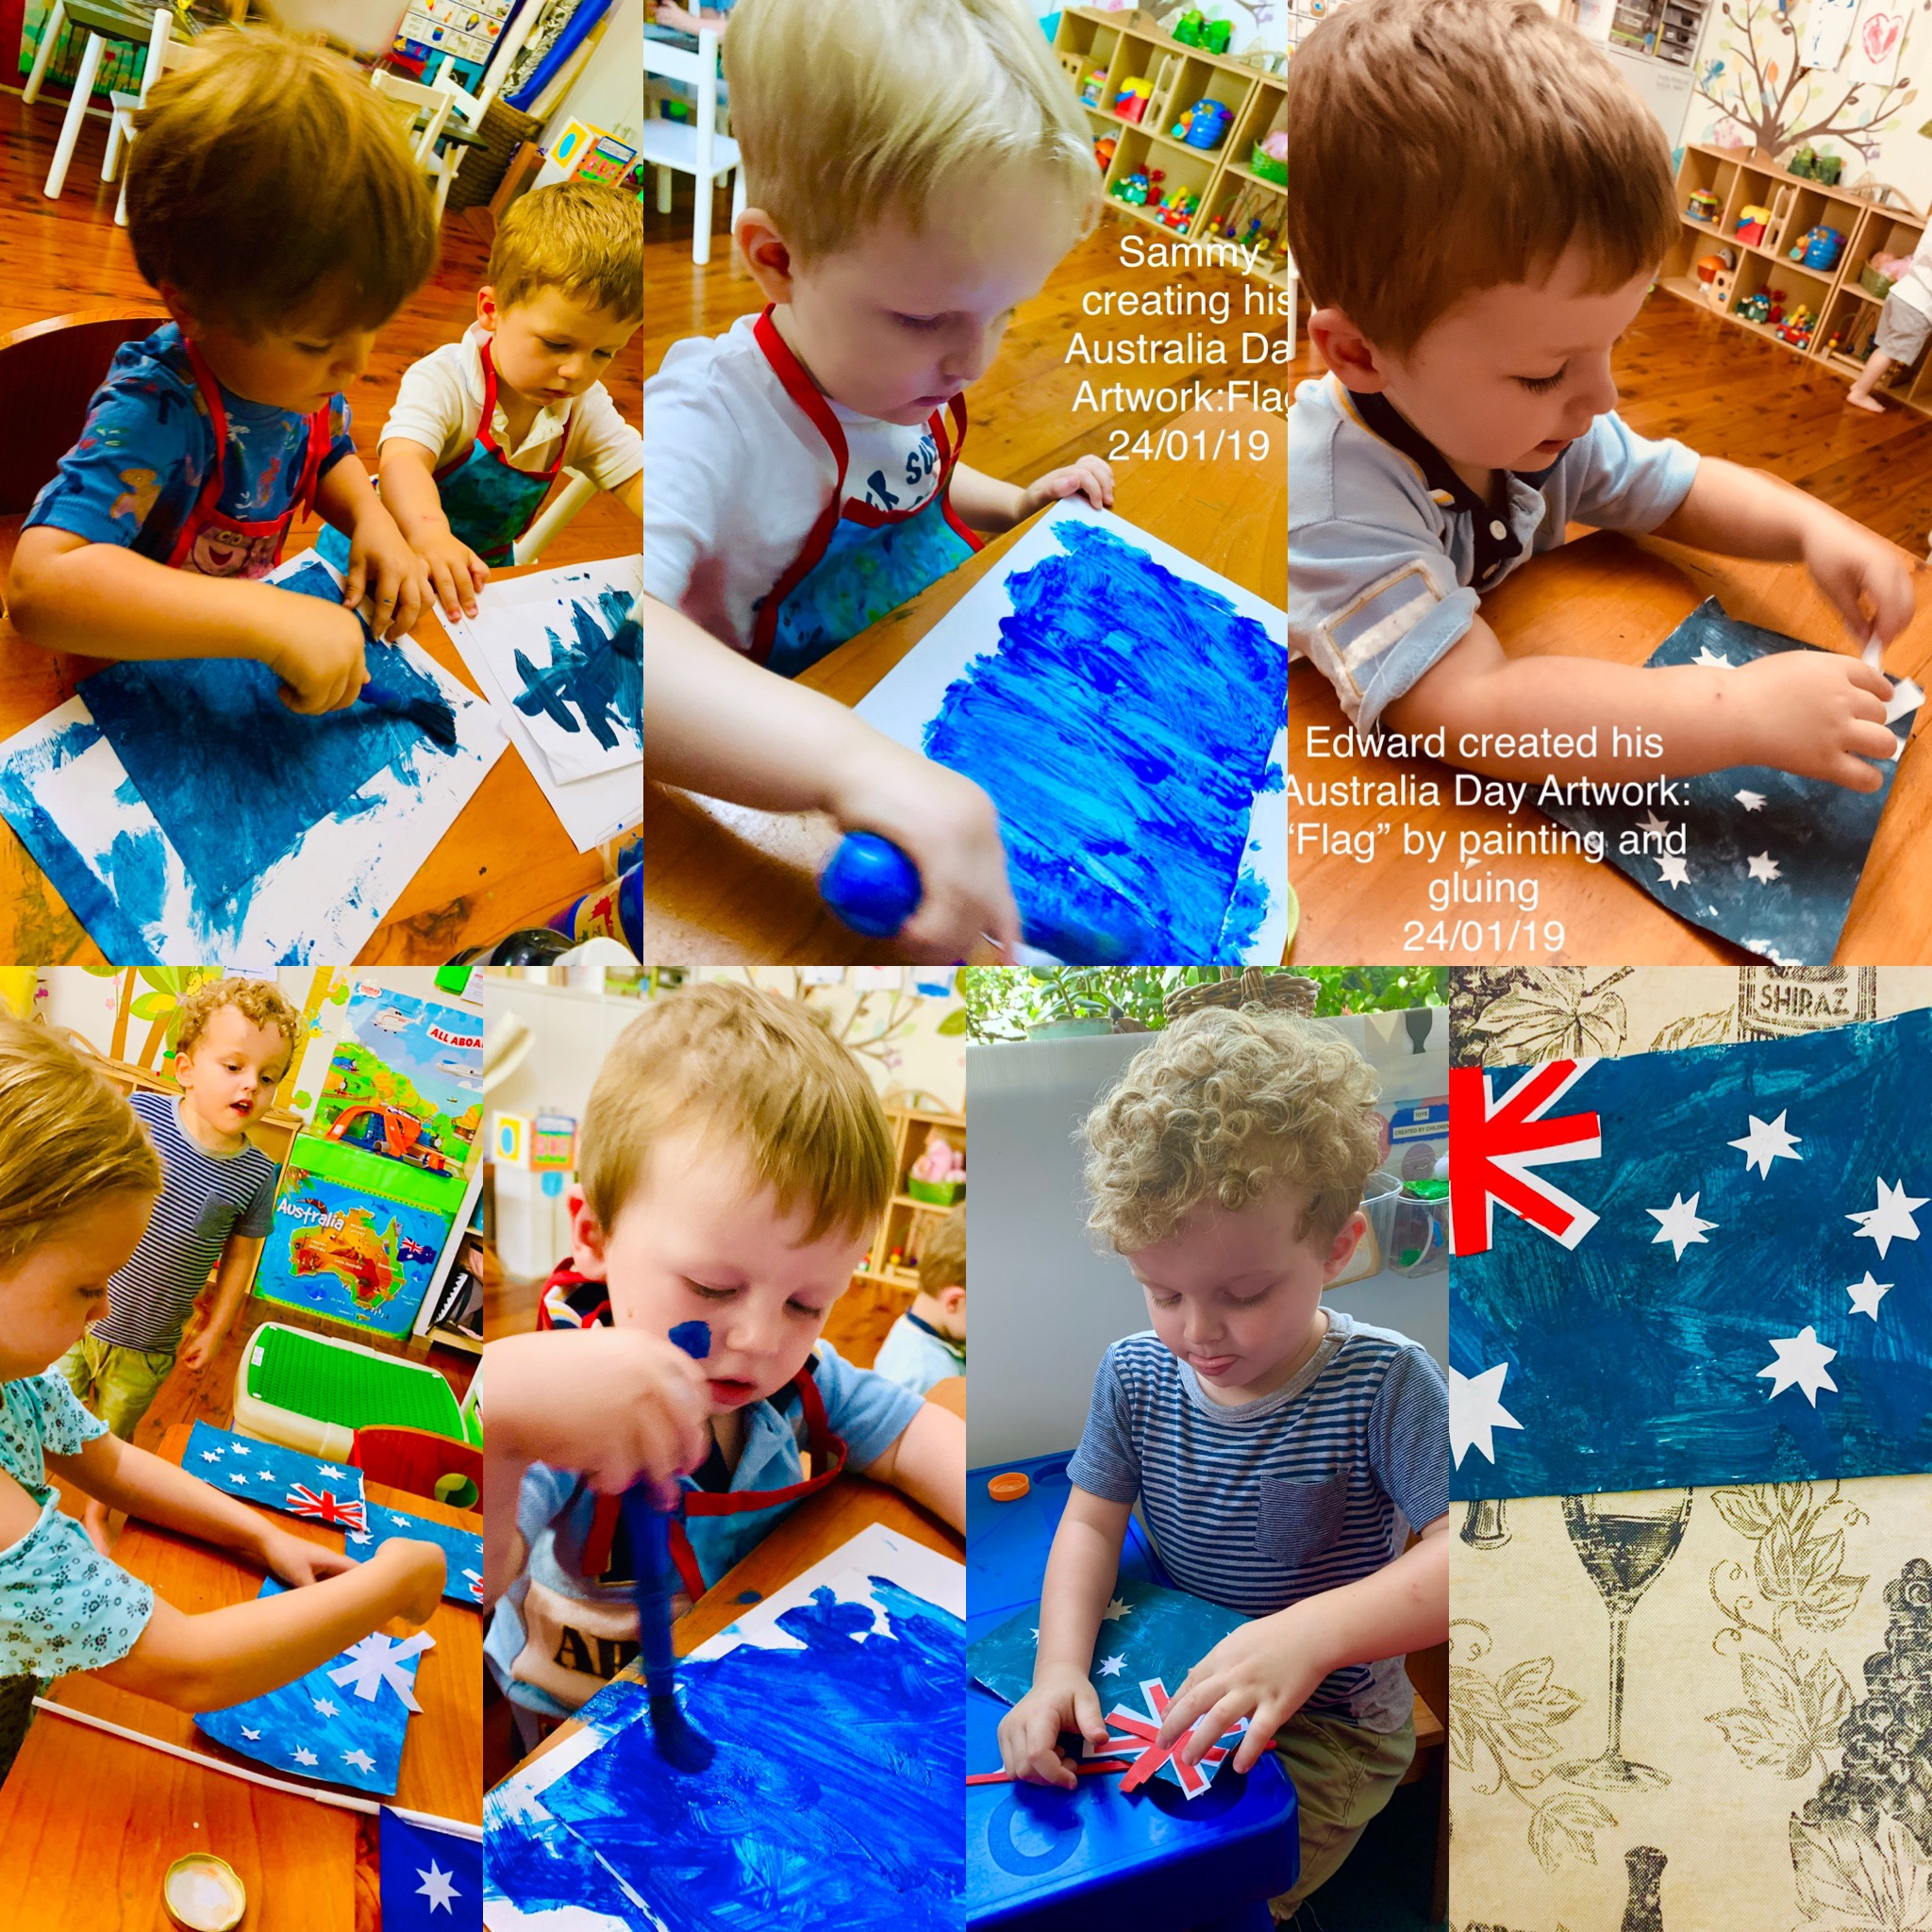 Australia Day Artwork